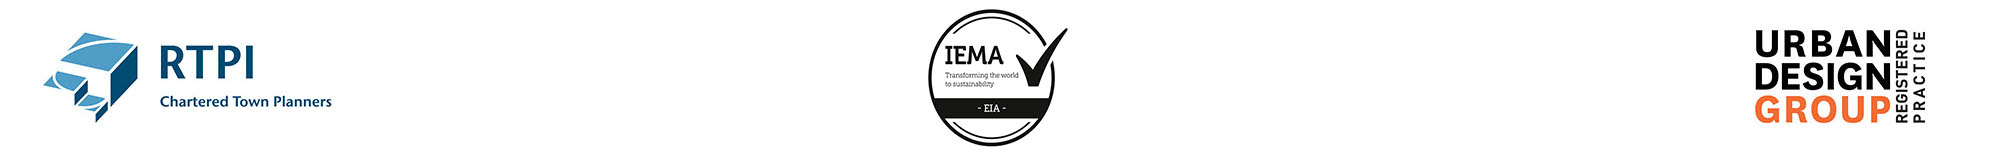 RTPI Chartered Town Planners, IEMA Quality Mark and Urban Design Group Registered Practice